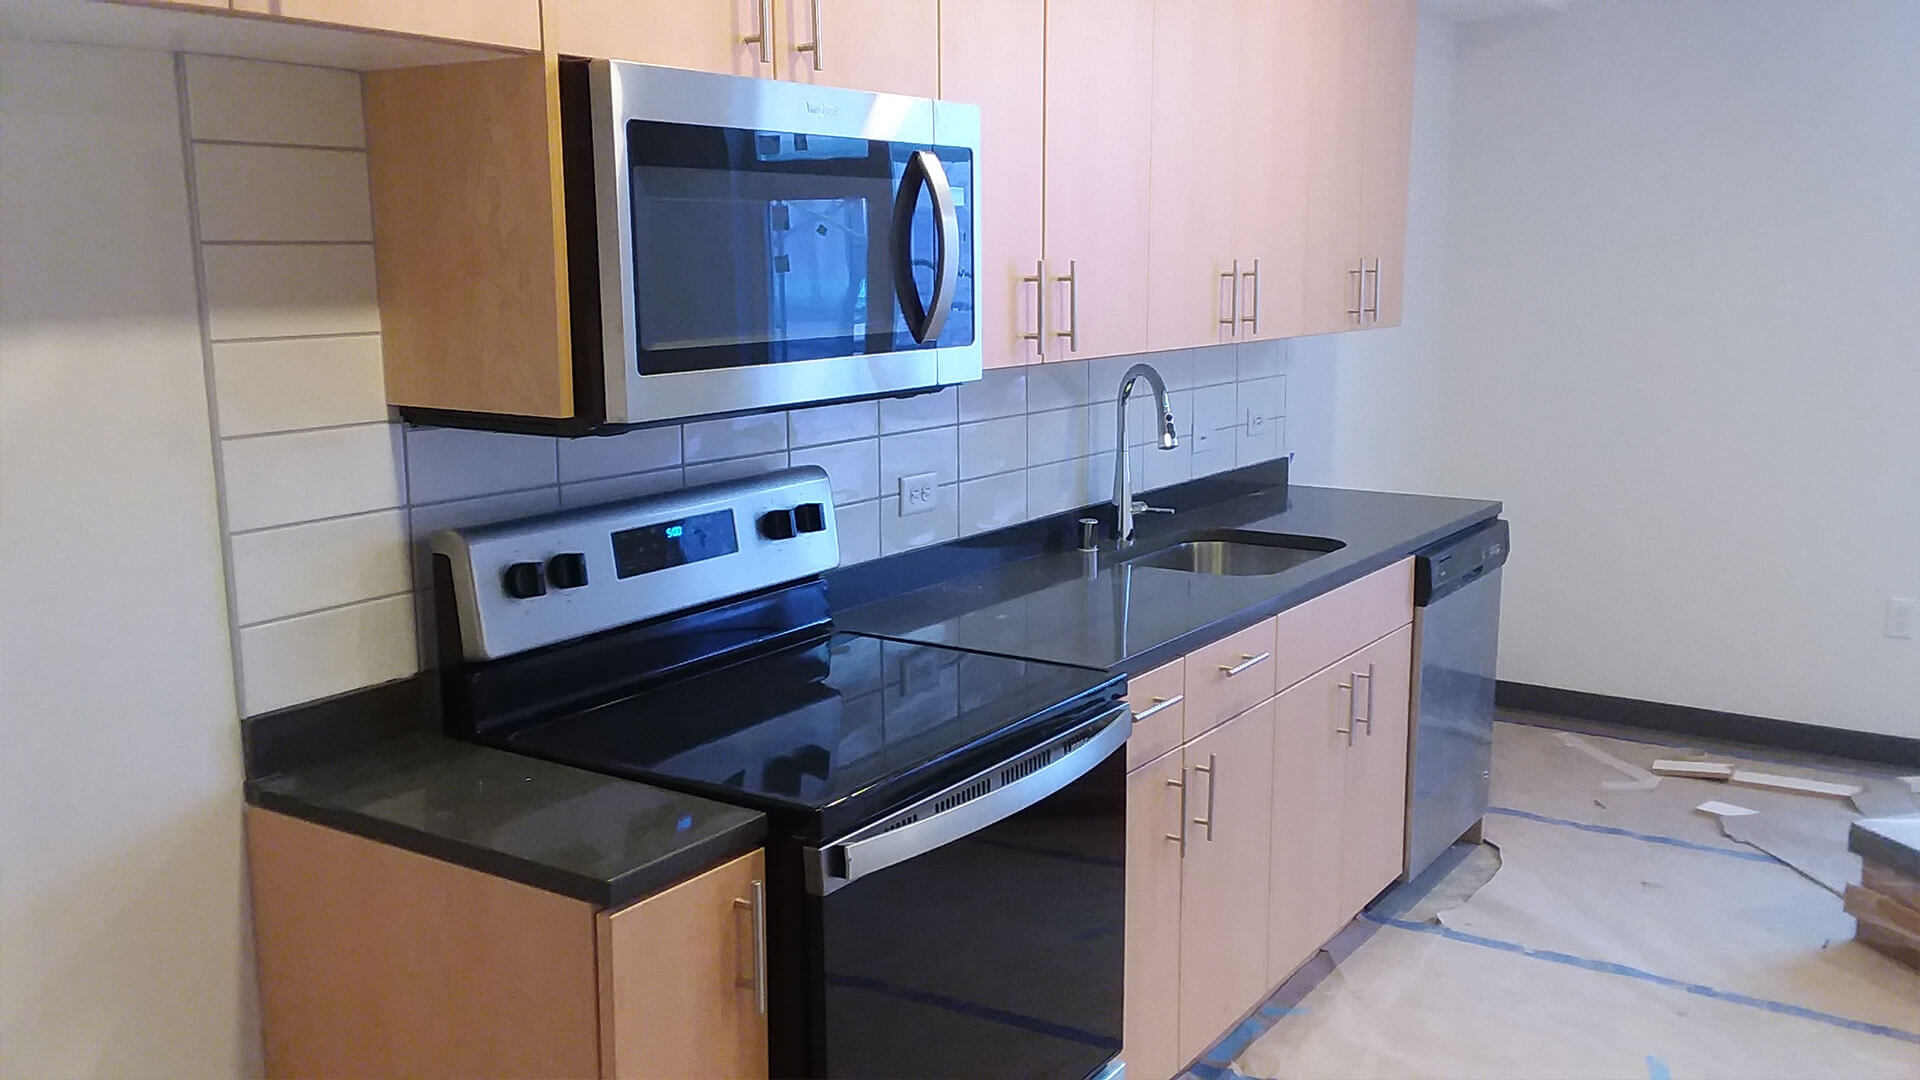 A Stove, Microwave, and Sink in the Kitchen of an Apartment at Stateside